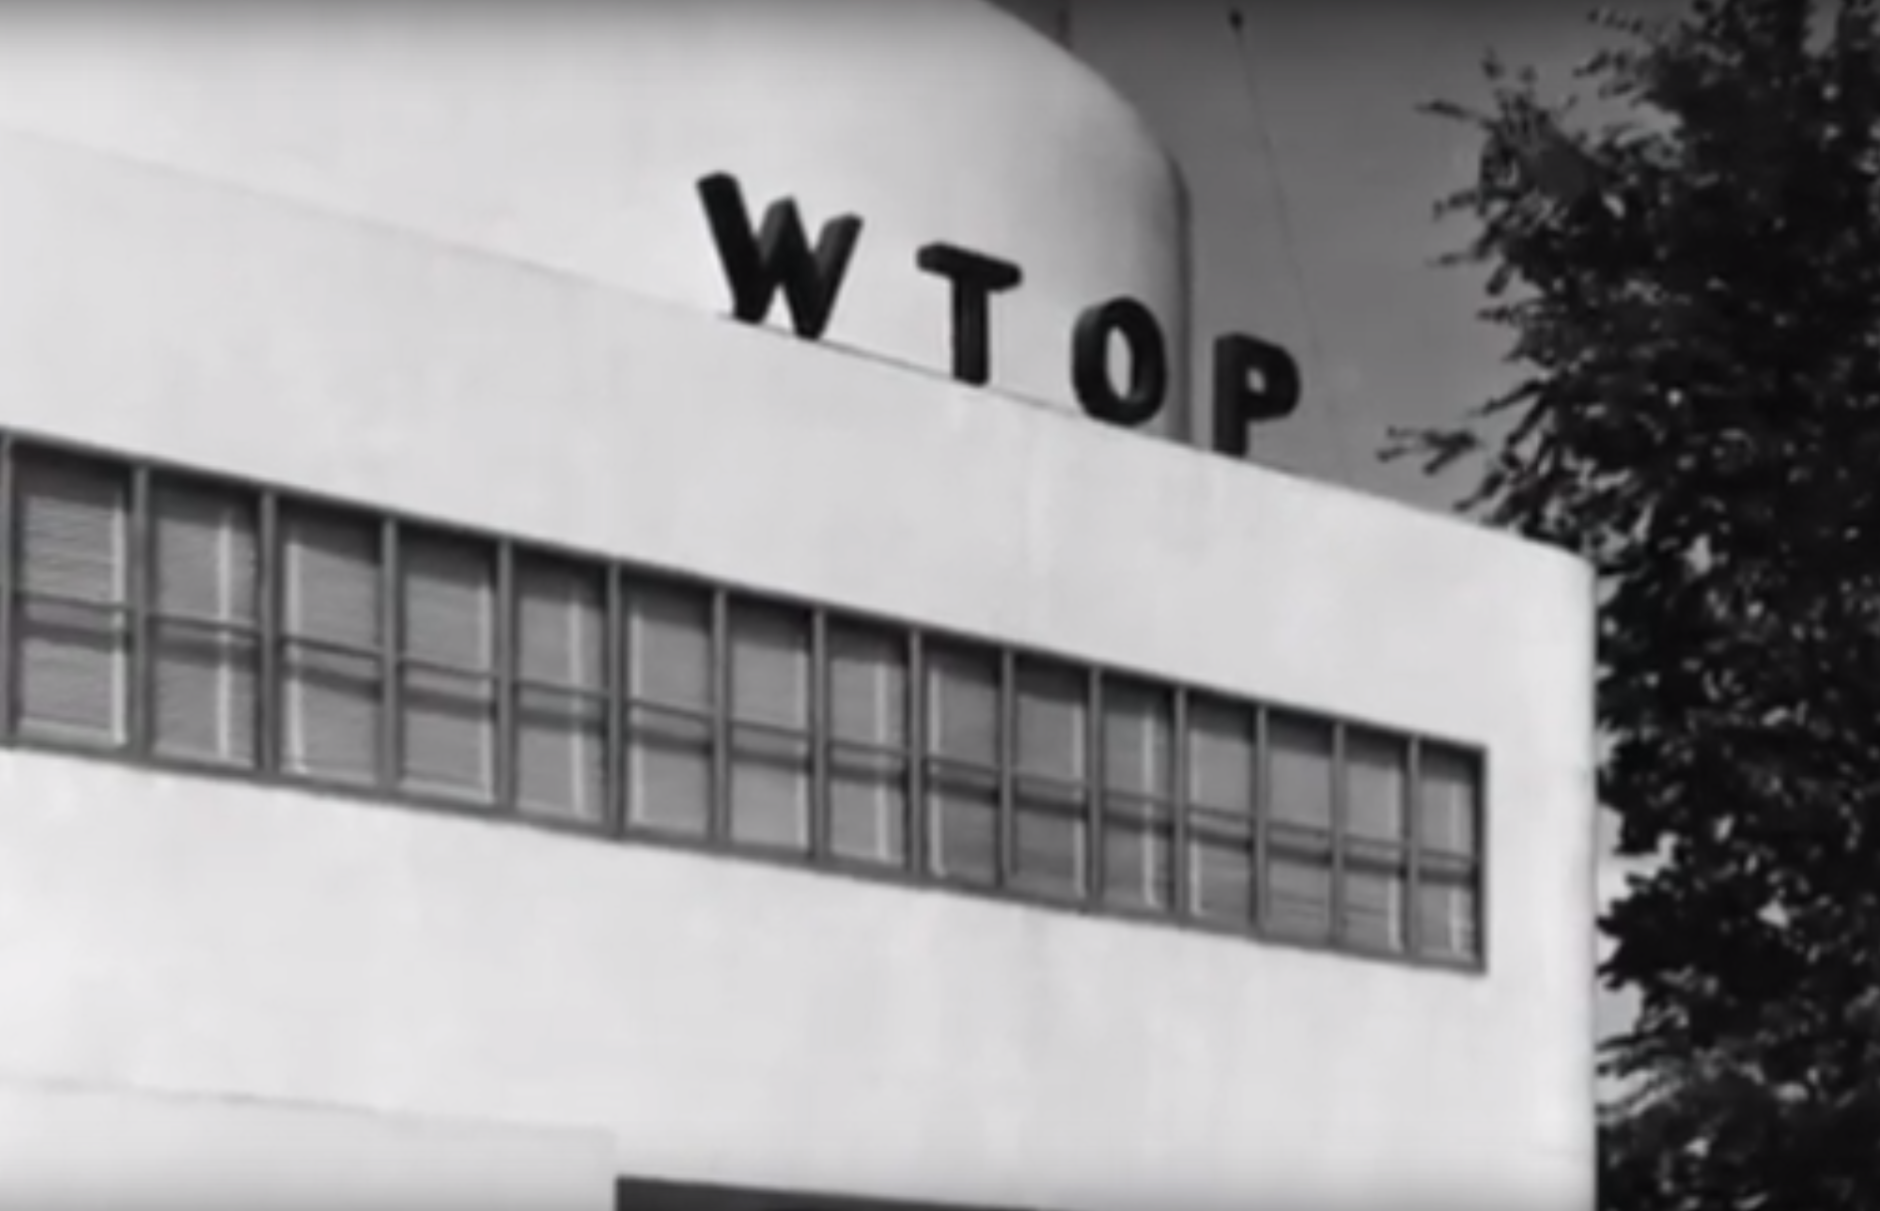 Back when it was on 1500 AM, WTOP broadcast from a tower in Wheaton, Maryland. It has since moved to transmitting from near the American University campus, and WFED (a.k.a. Federal News Network) now broadcasts from there. (File photo)